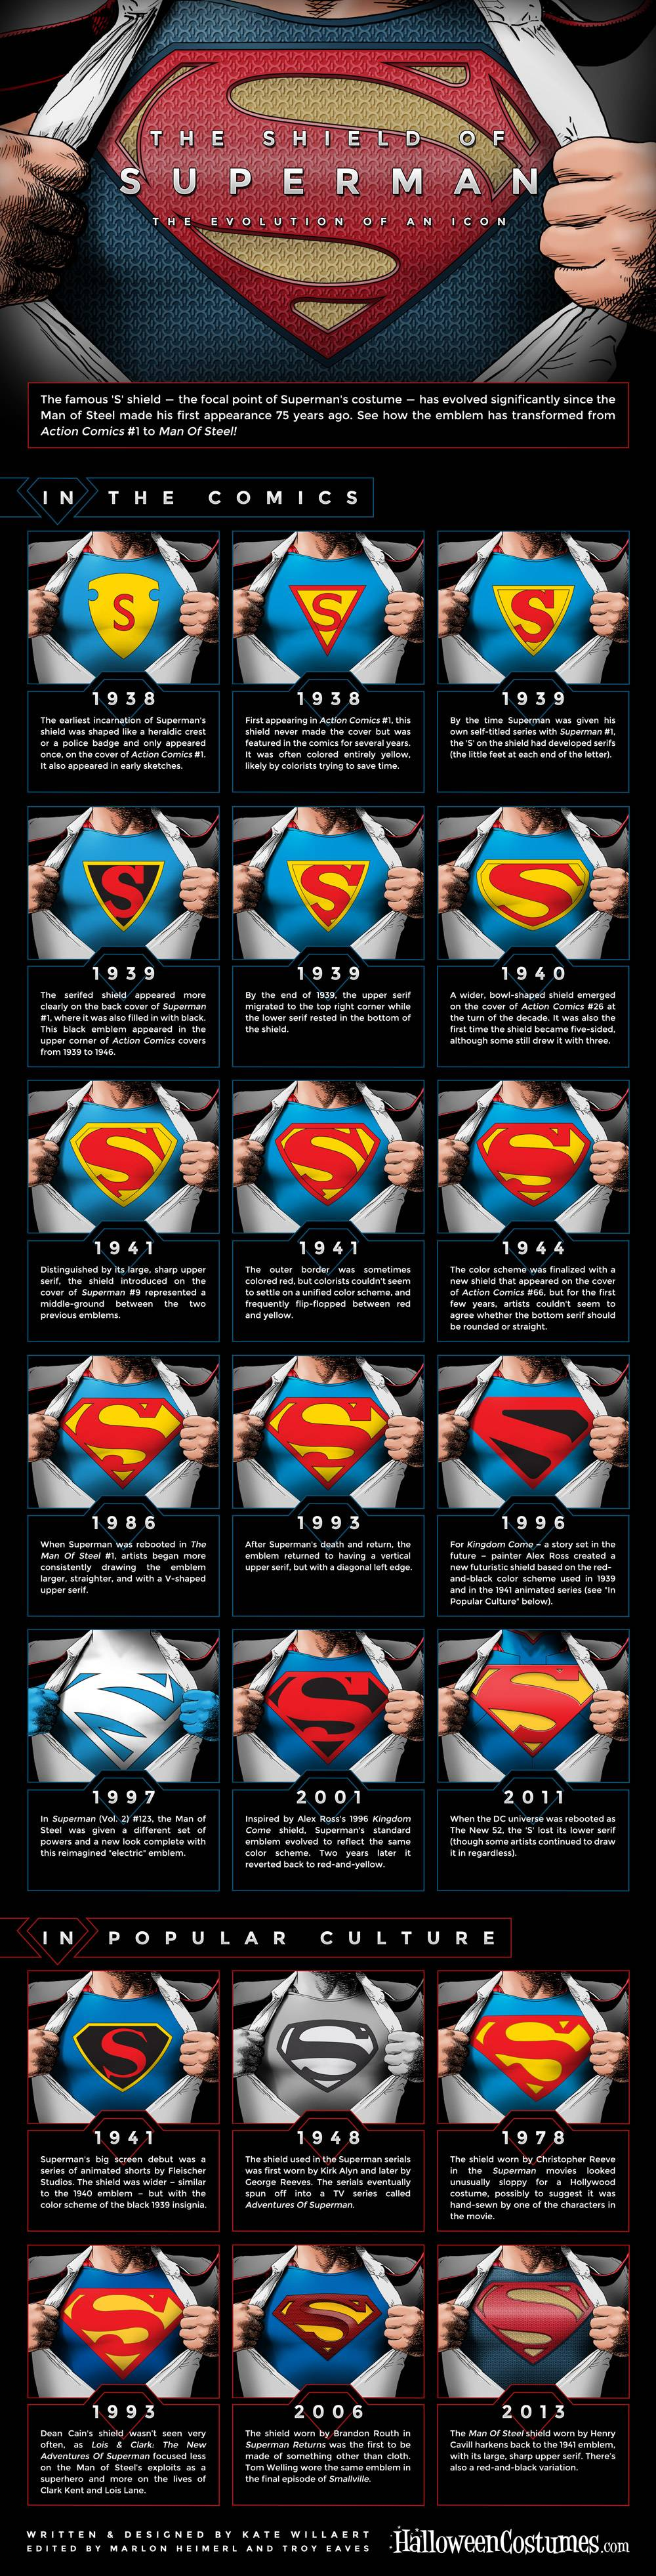 History of Superman S,History of Superman ,history,superman meme,superman movie,superman comic,superman cartoon,superman thing,s of superman,